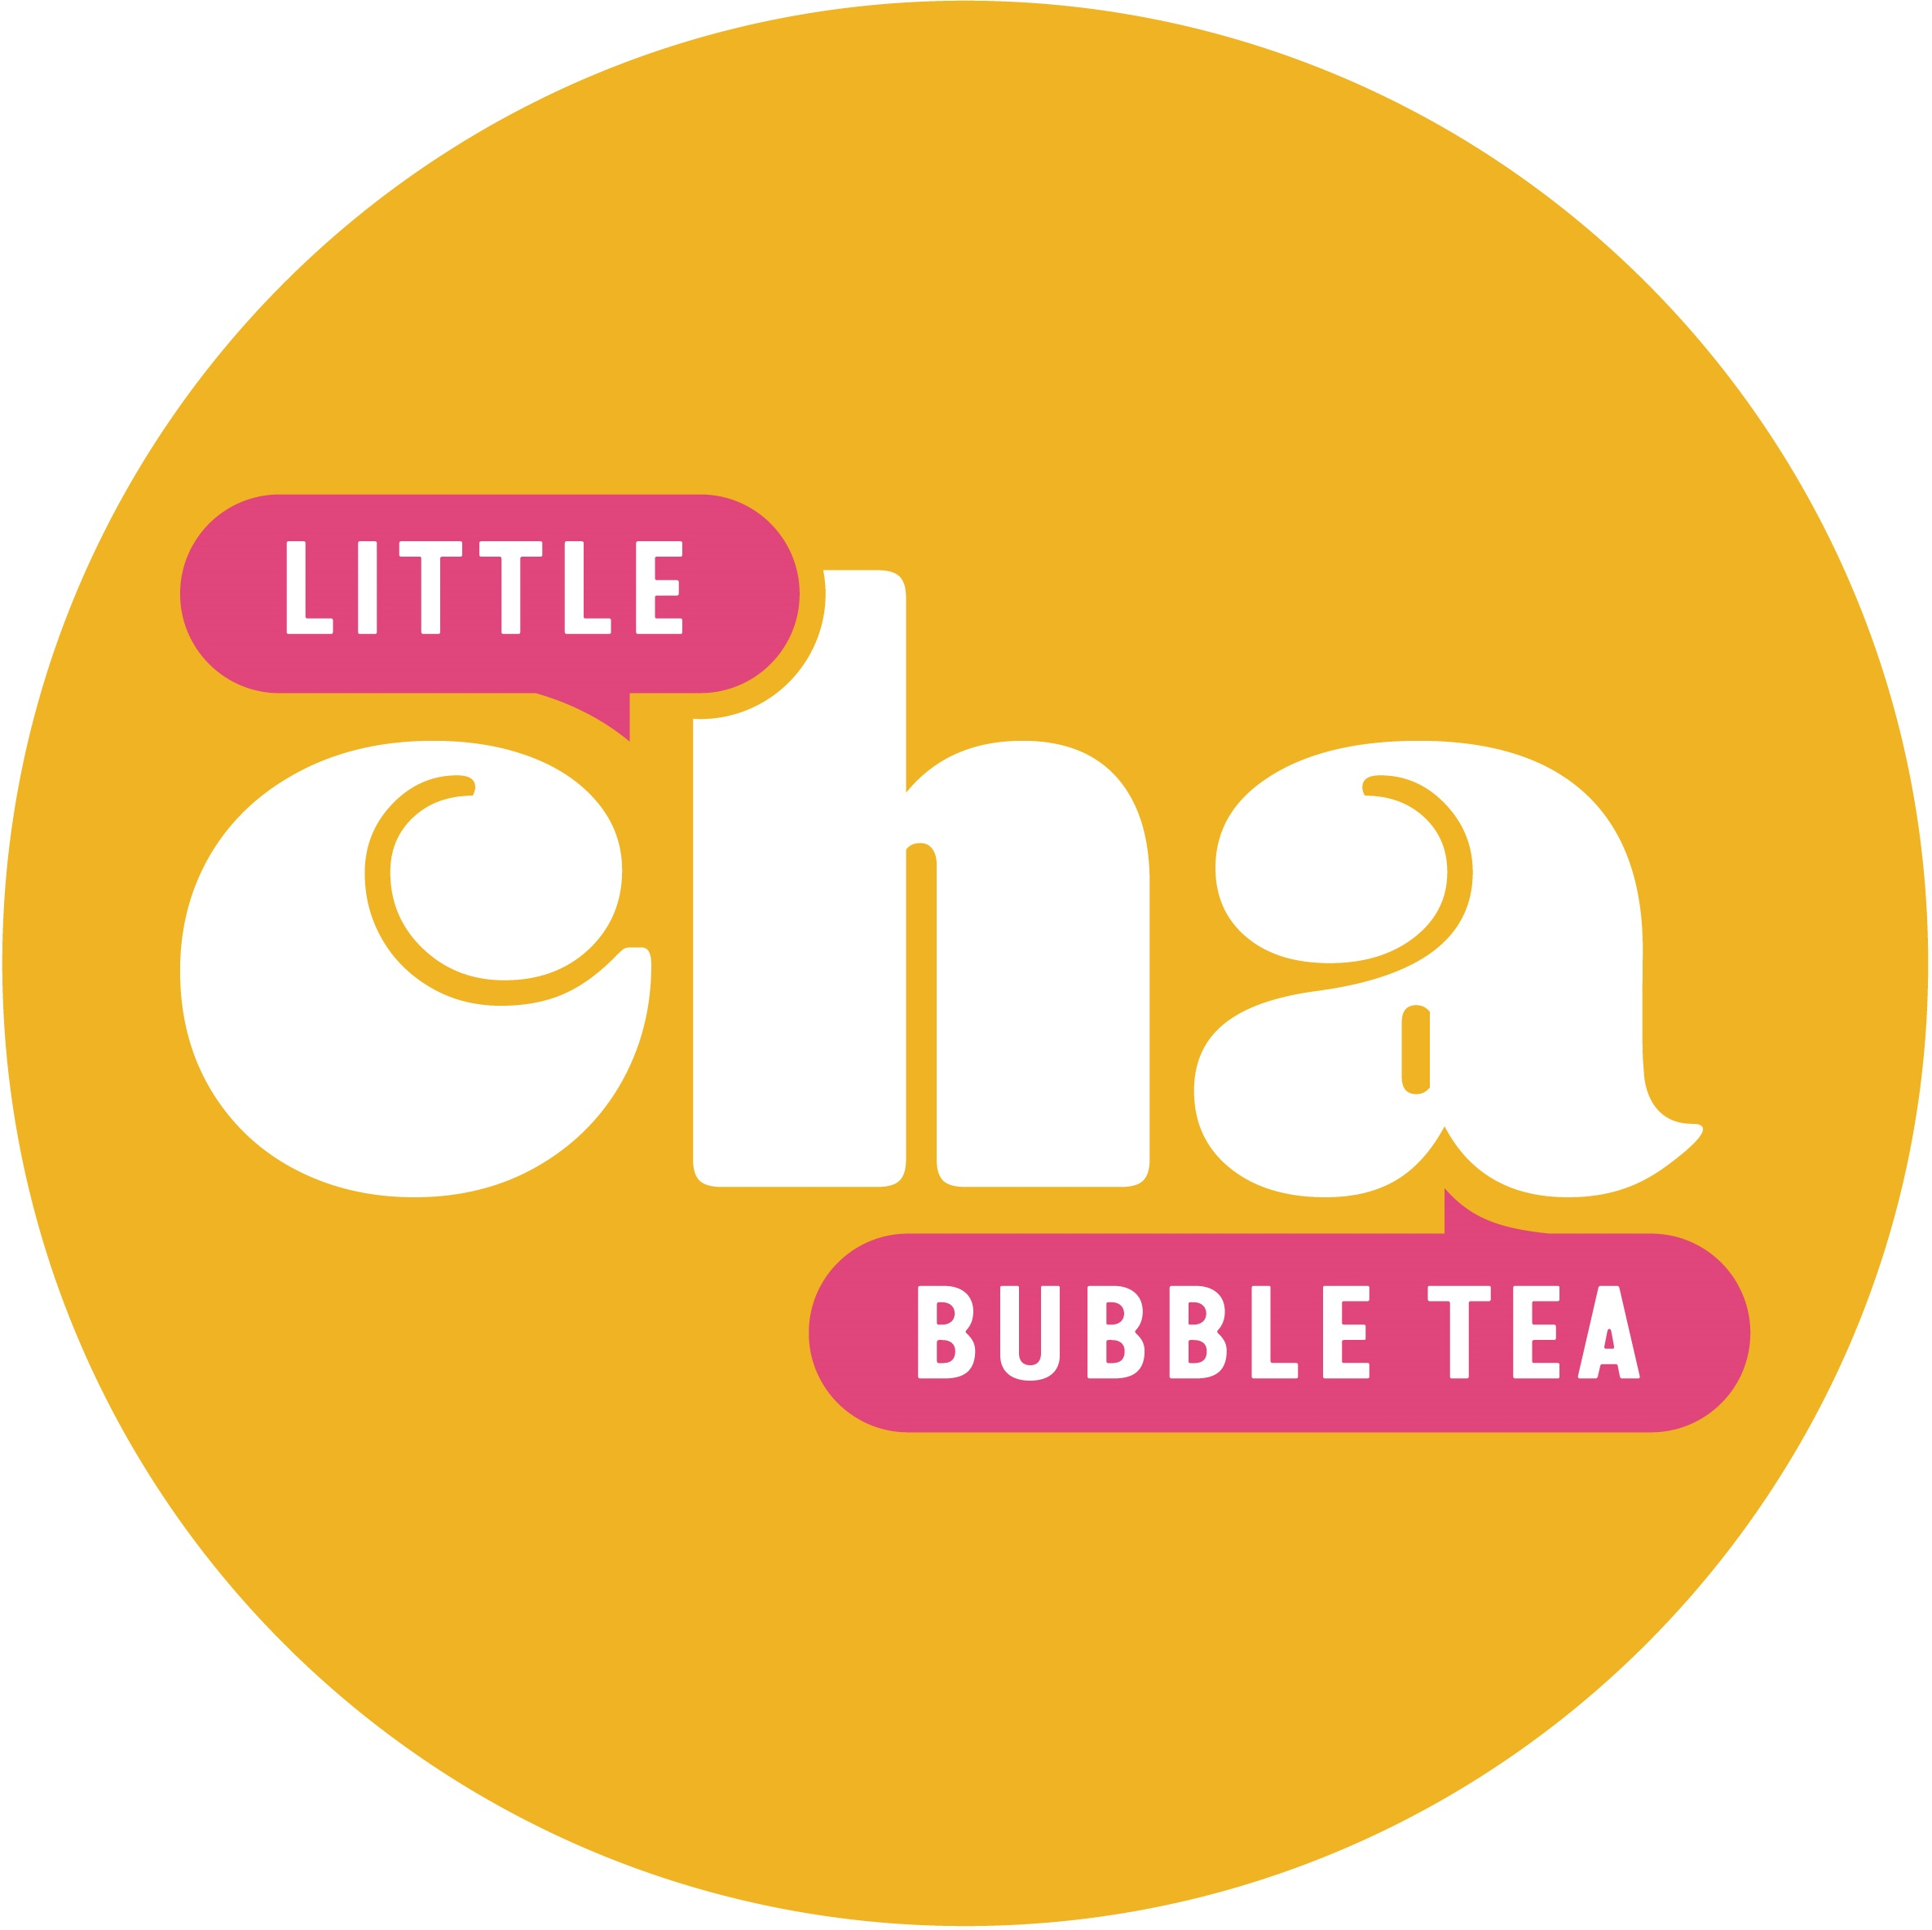 The Little Cha Logo